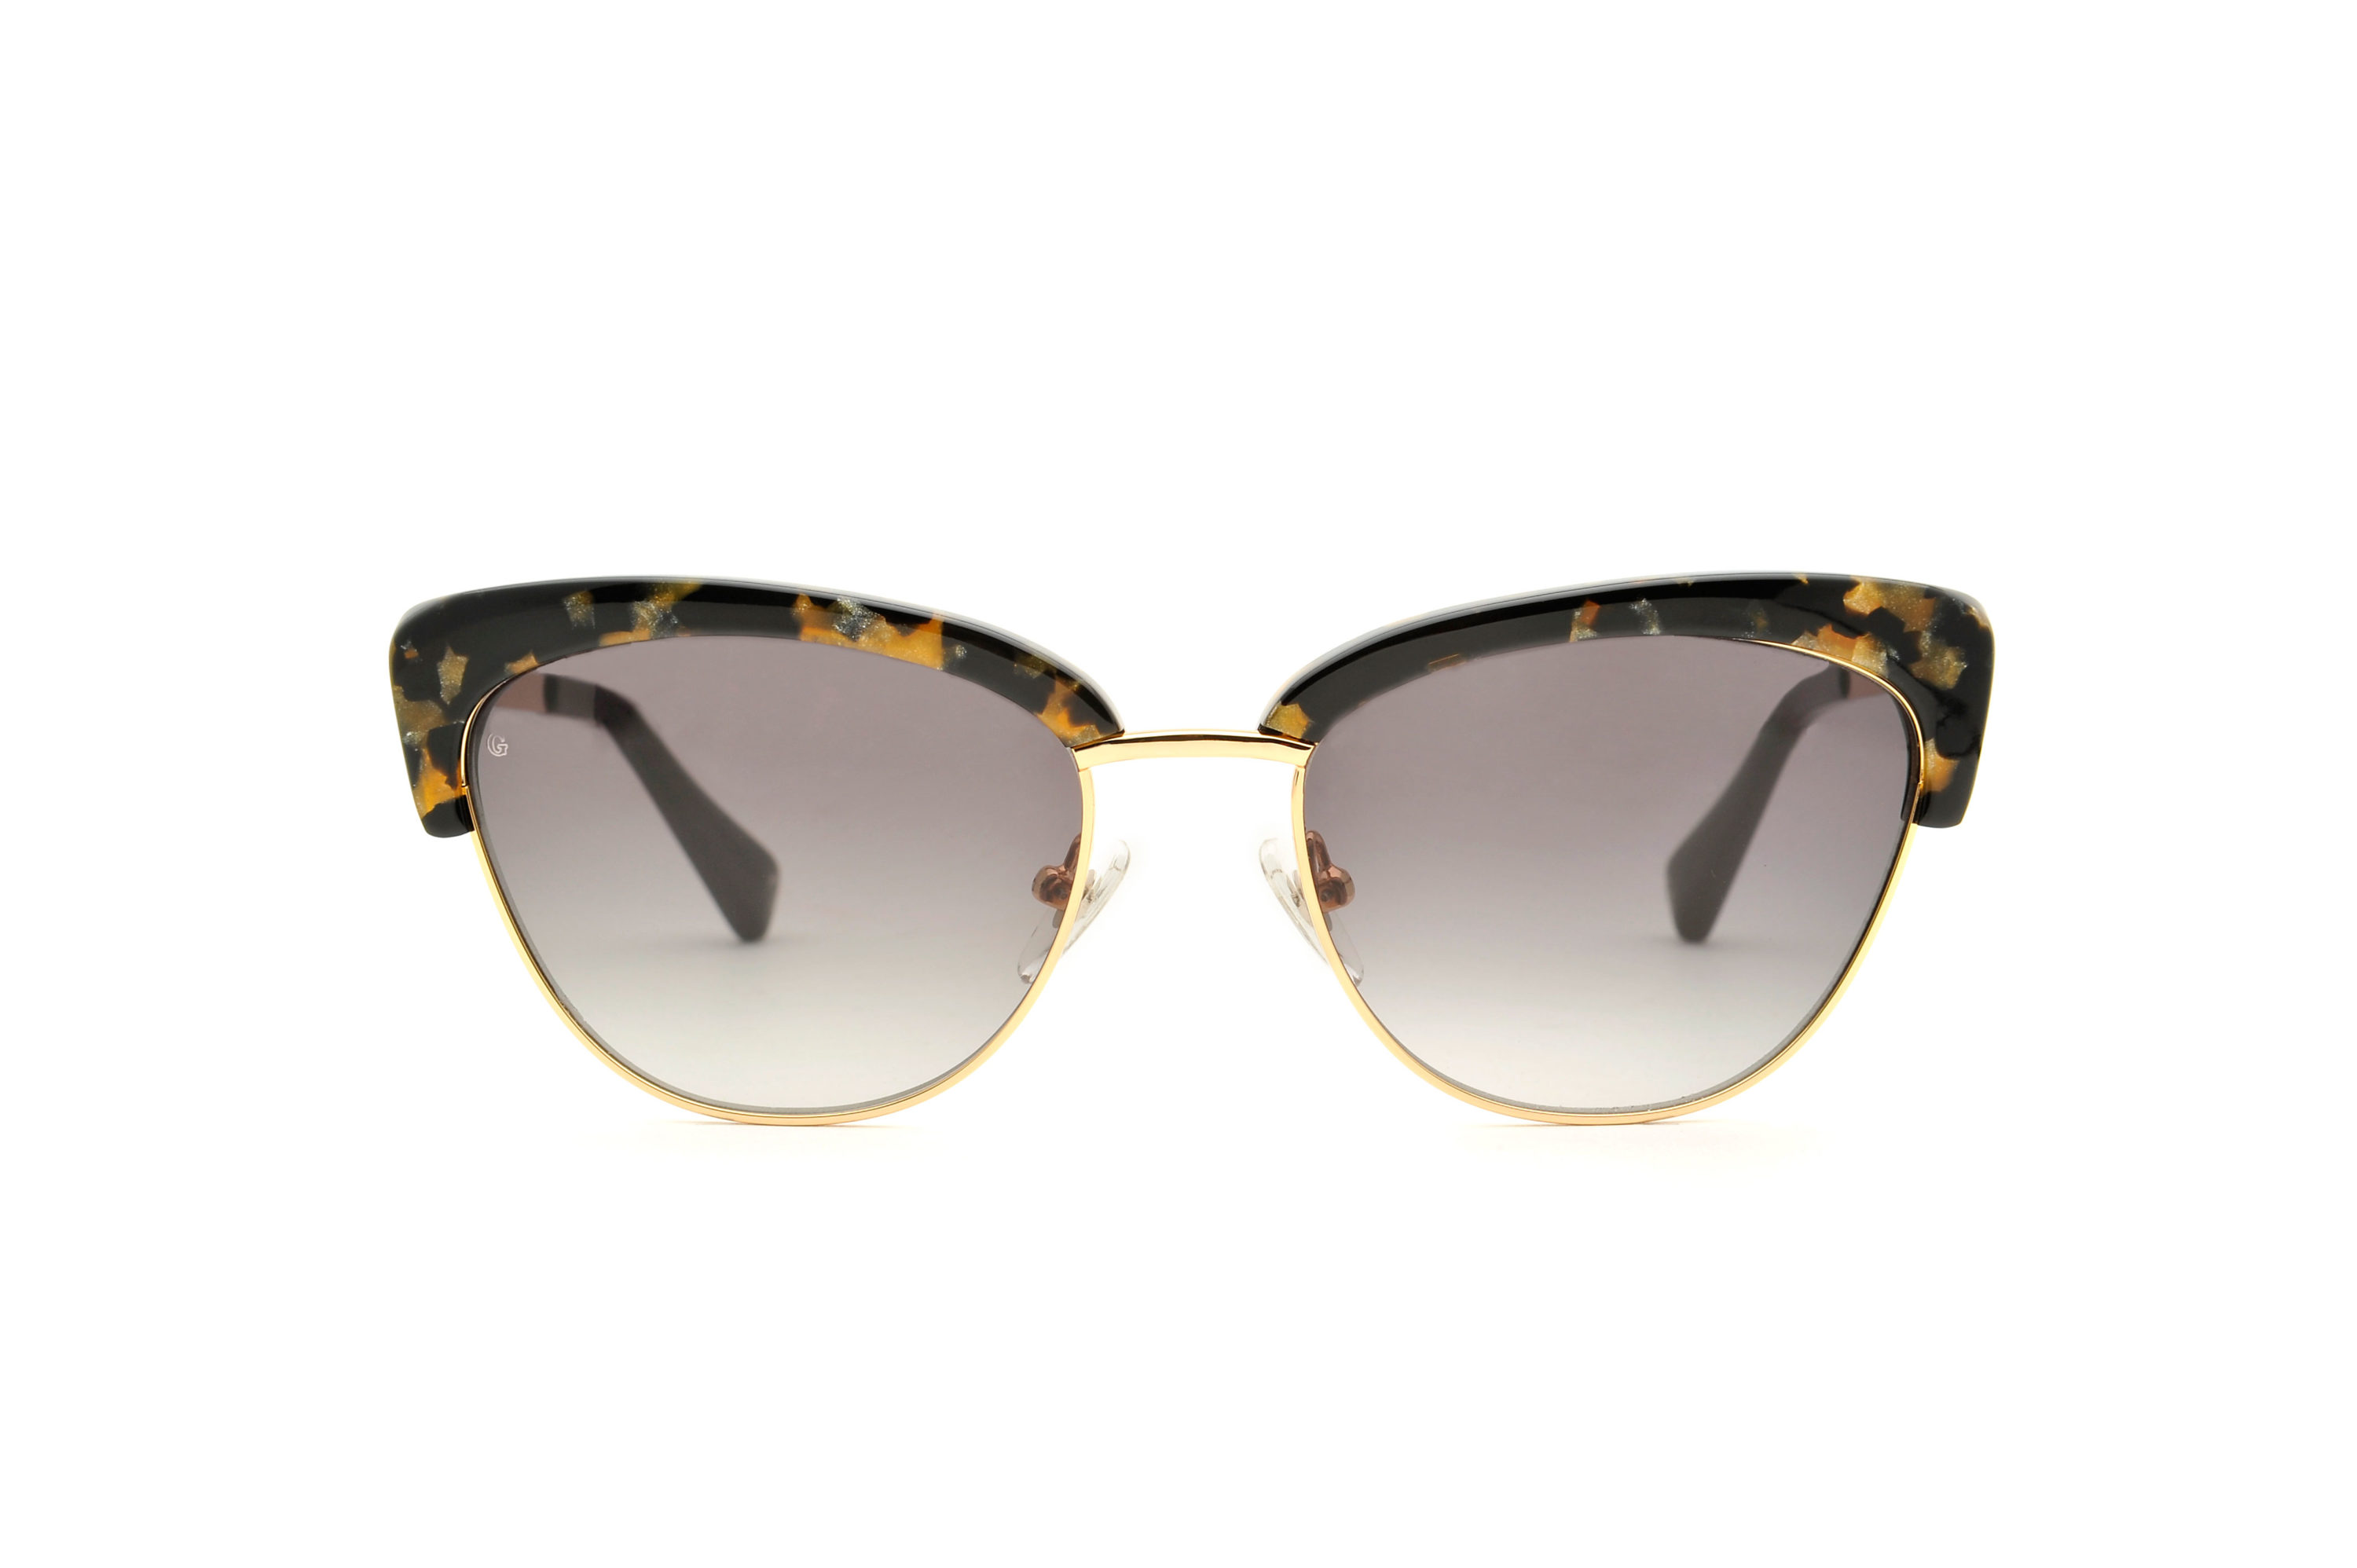 Grace acetate/metal cat eye tortoise sunglasses by GIGI Studios